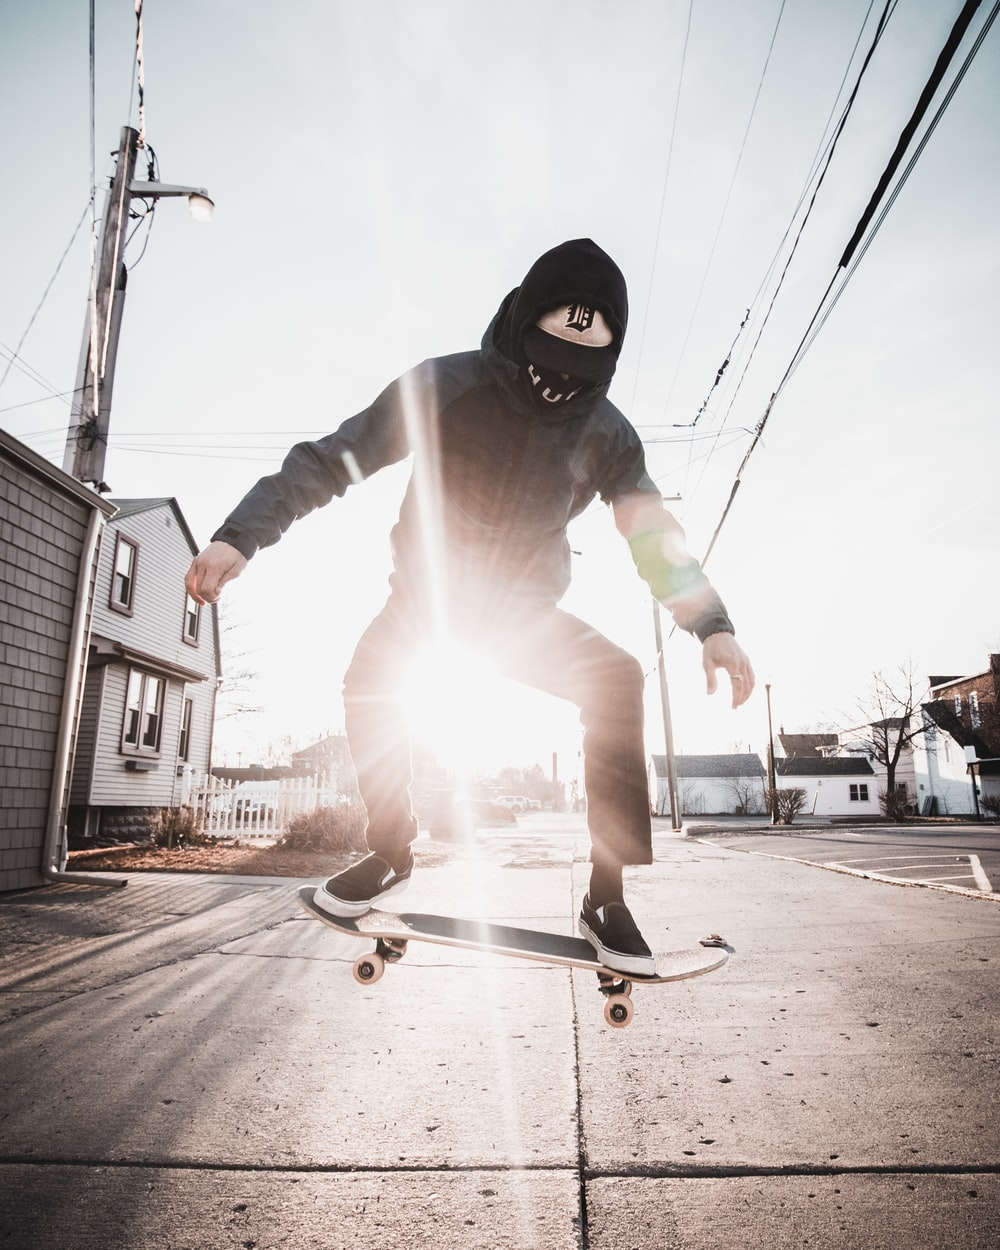 man in black hoodie and white pants riding skateboard during daytime